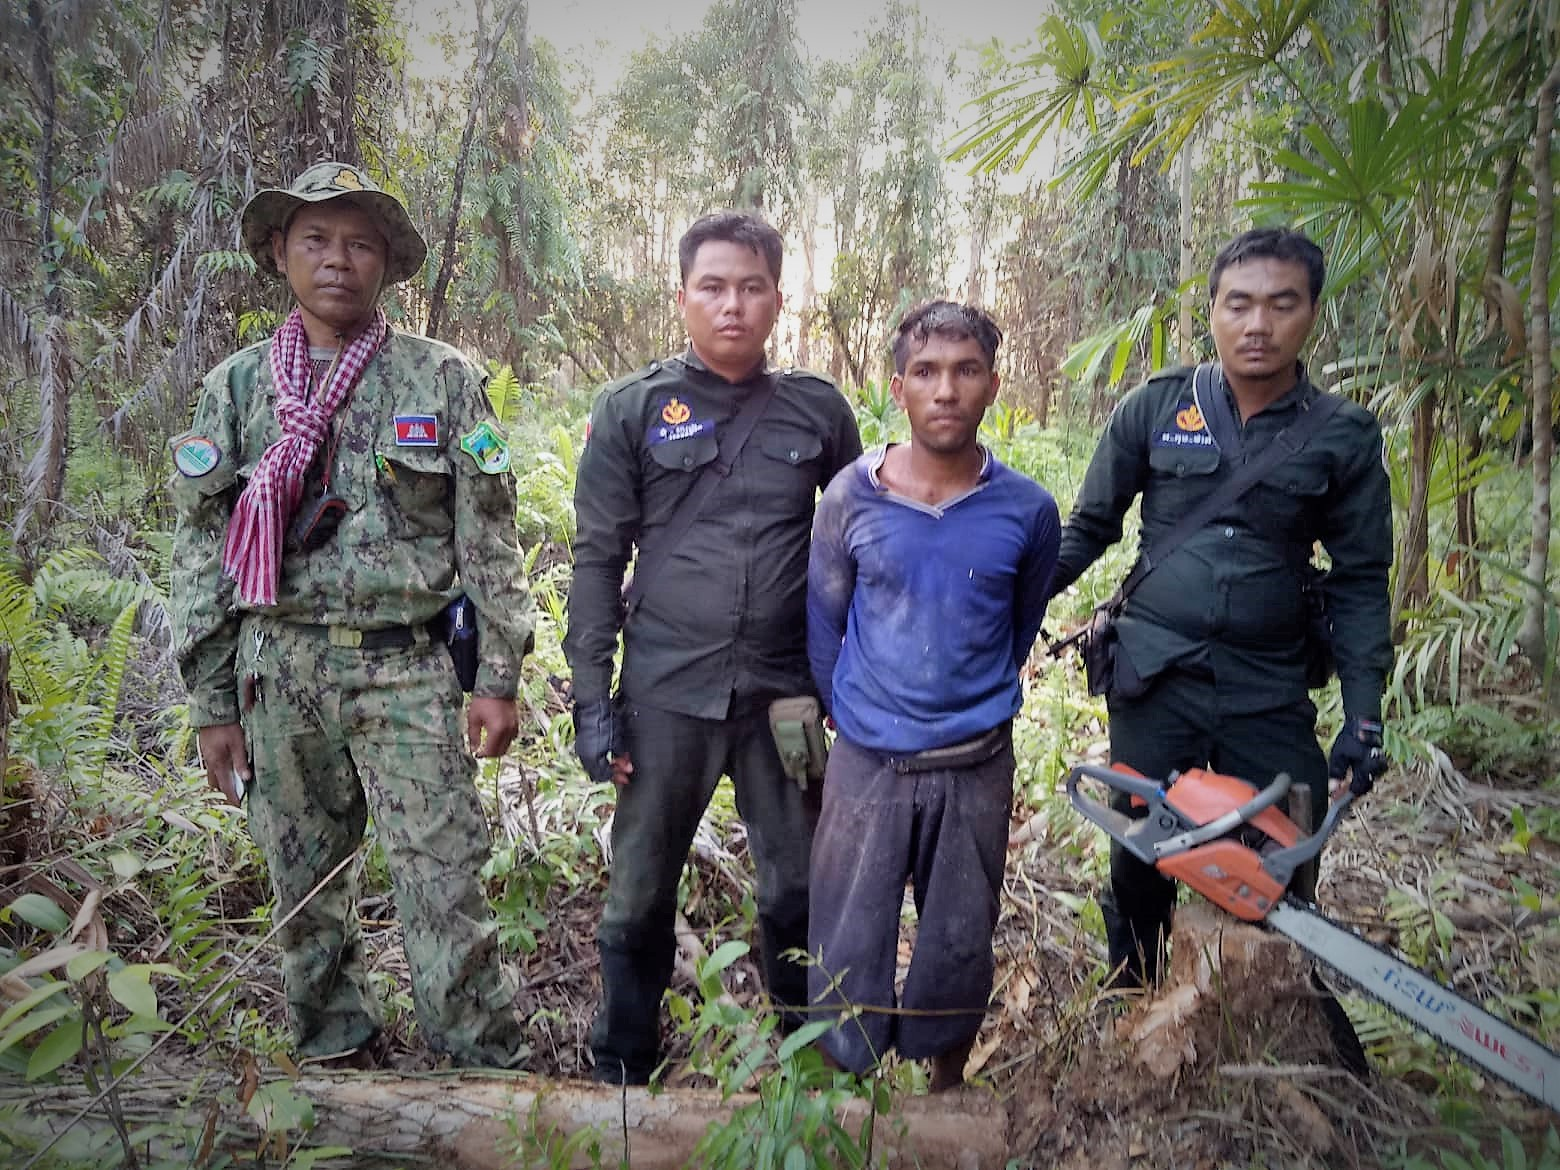 saving the rainforest Saving the rainforest offender cought for illegal logging